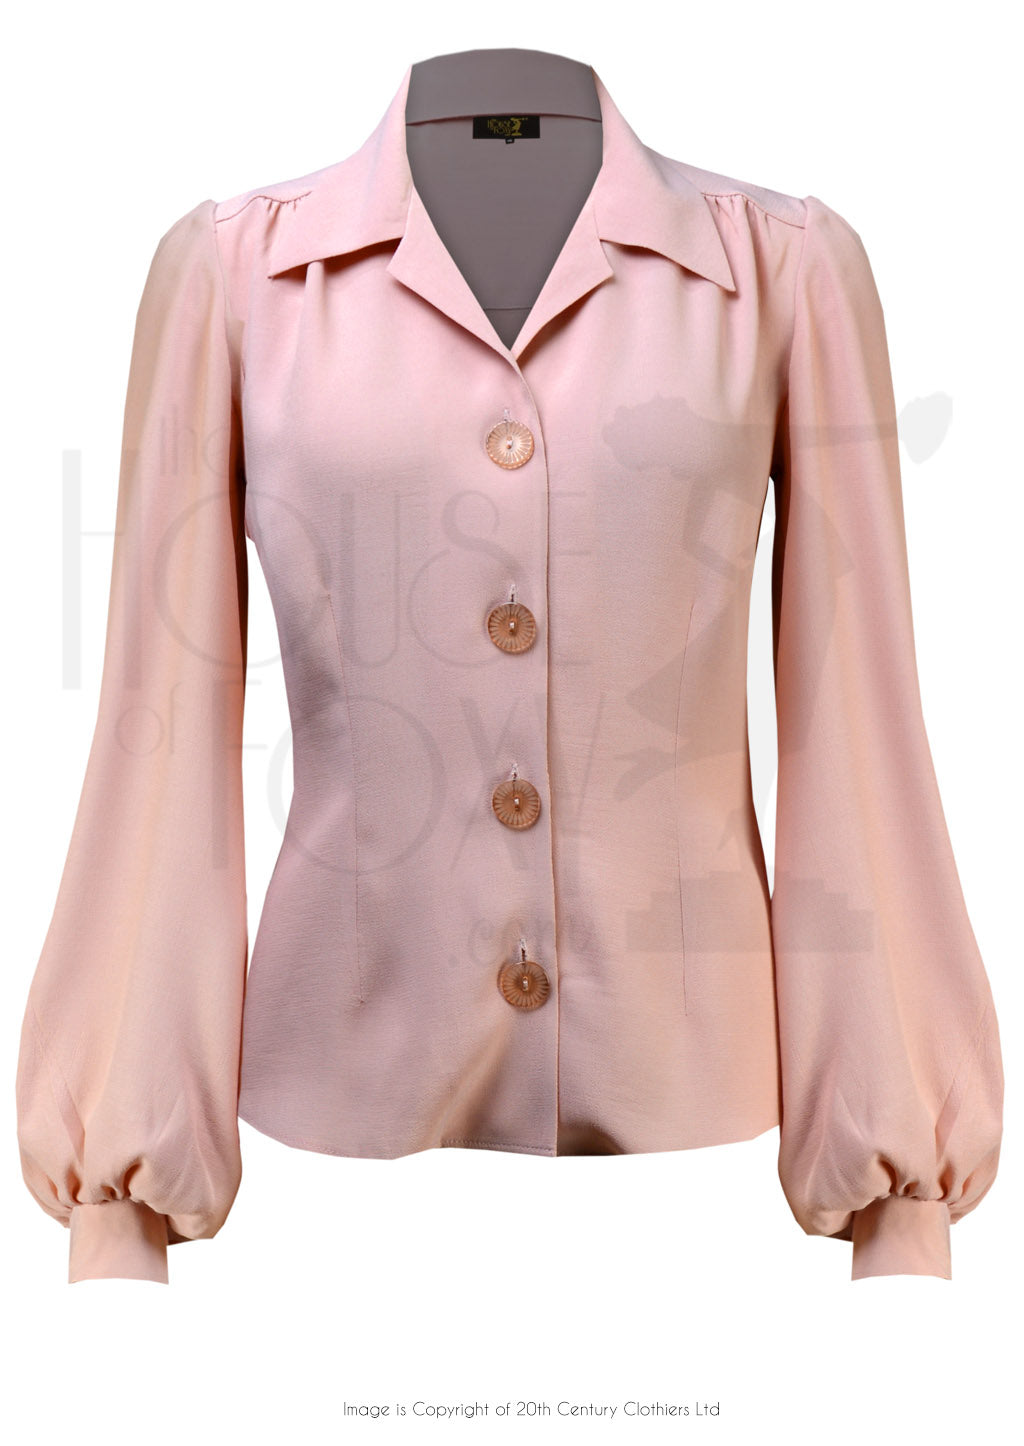 House of Foxy 1940's Shirt Blouse in Blush